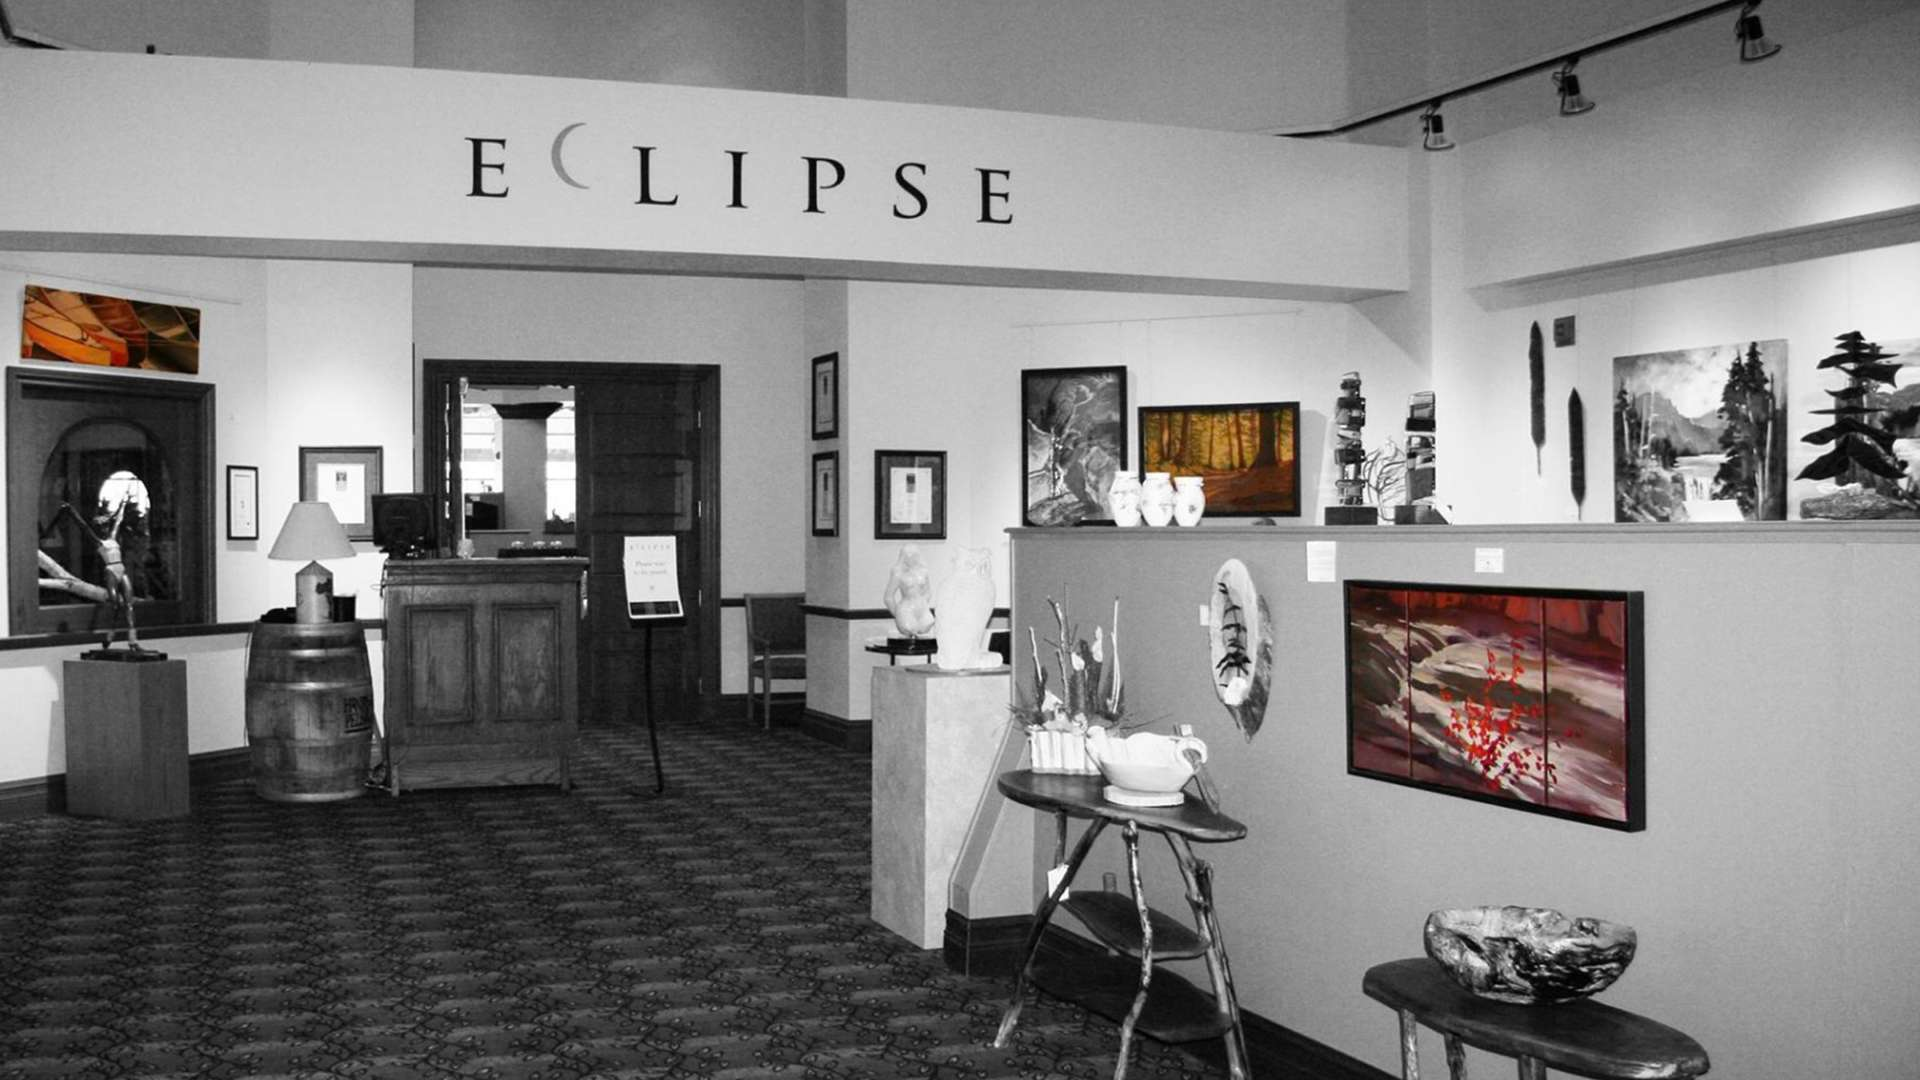 Eclipse Art Gallery